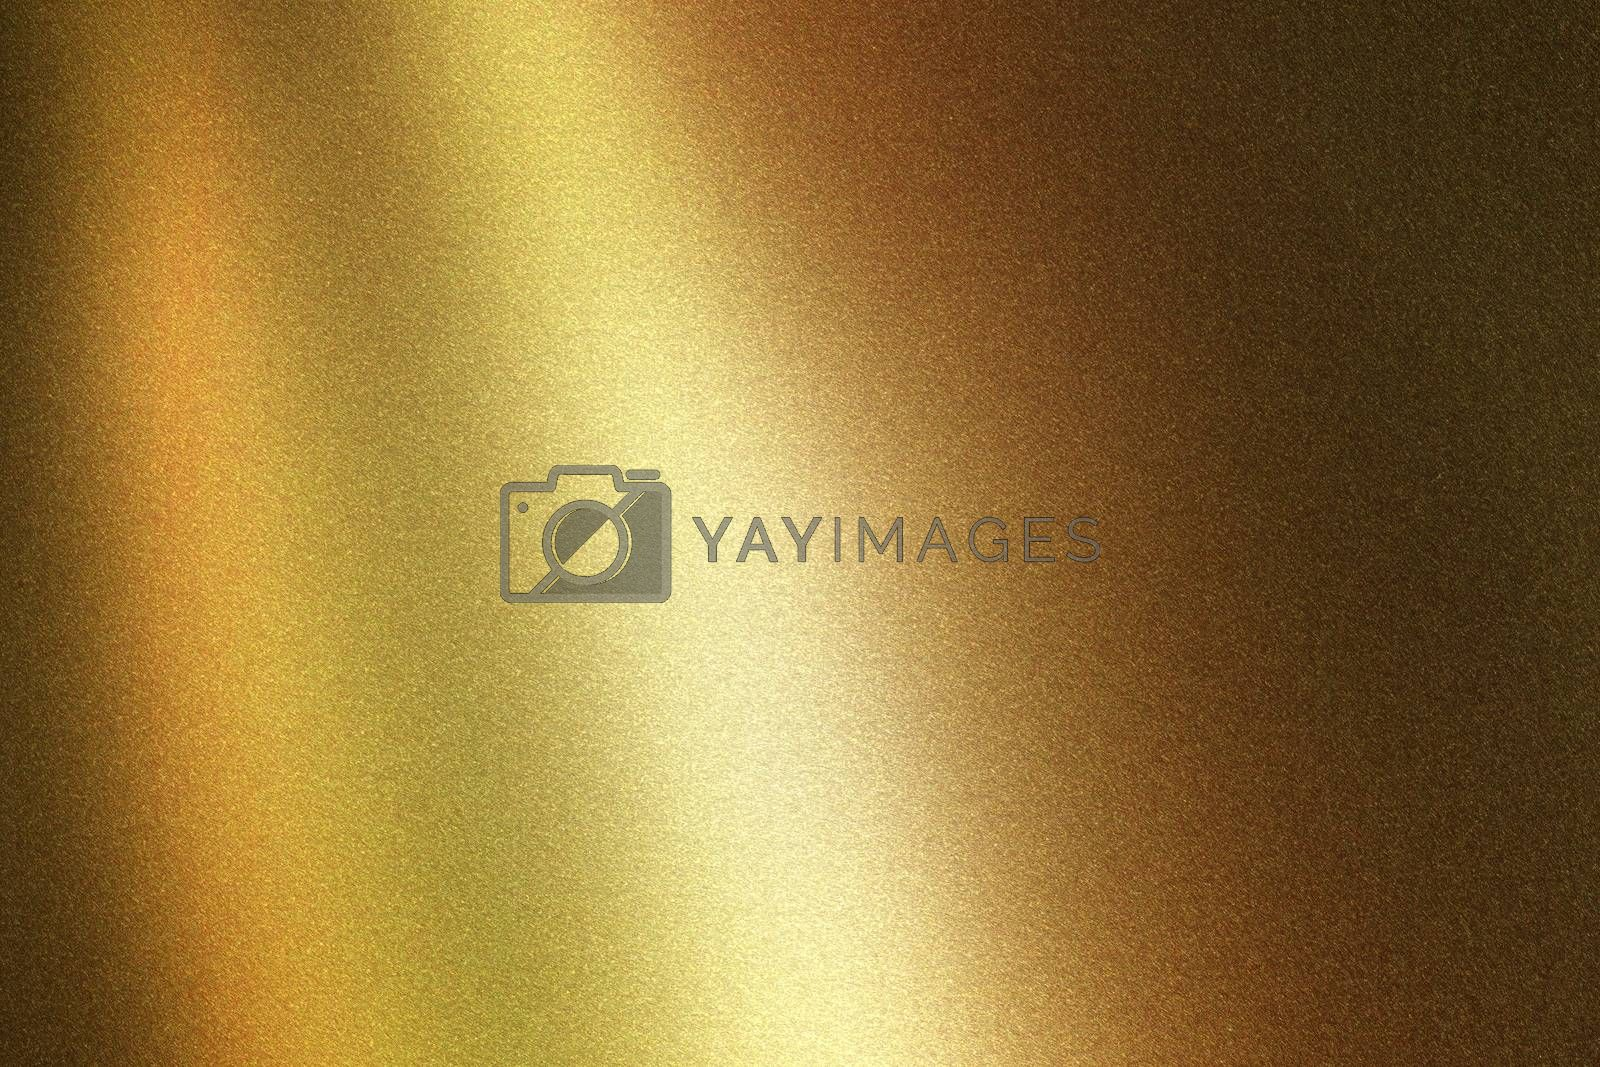 Light shining on bronze metallic wall in dark room, abstract texture background by mouu007